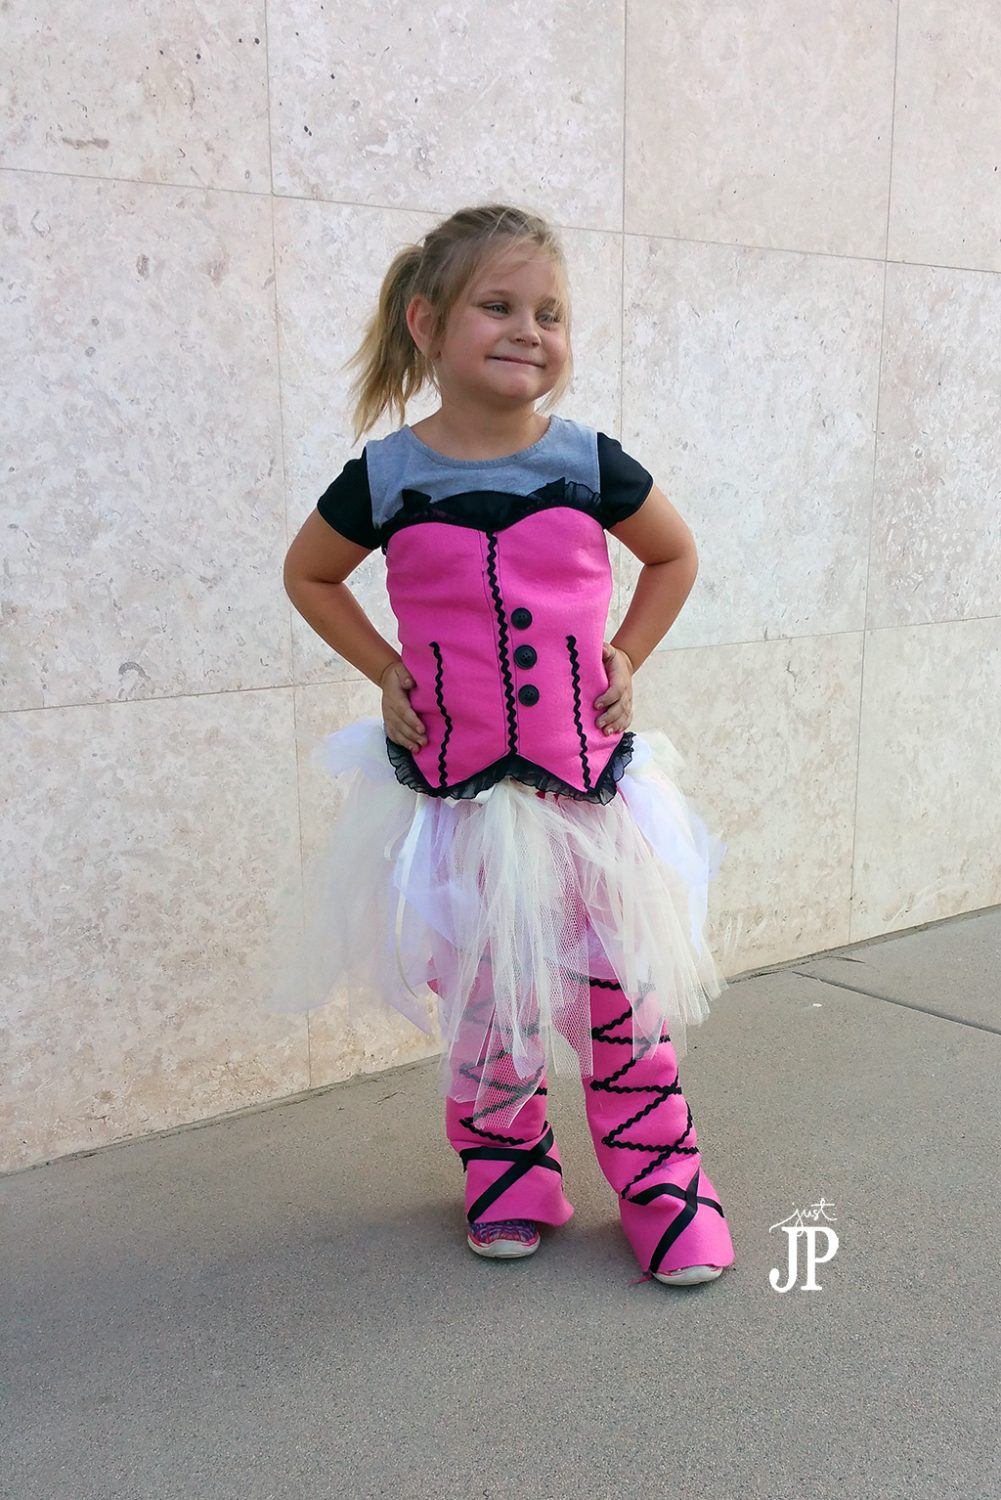 DIY-DracuLaura-Costume-Monster-High-with-Felt-Jpriest  sc 1 st  Smart Fun DIY & Costume Clinic Recap + DIY DracuLaura Costume #JPHalloween